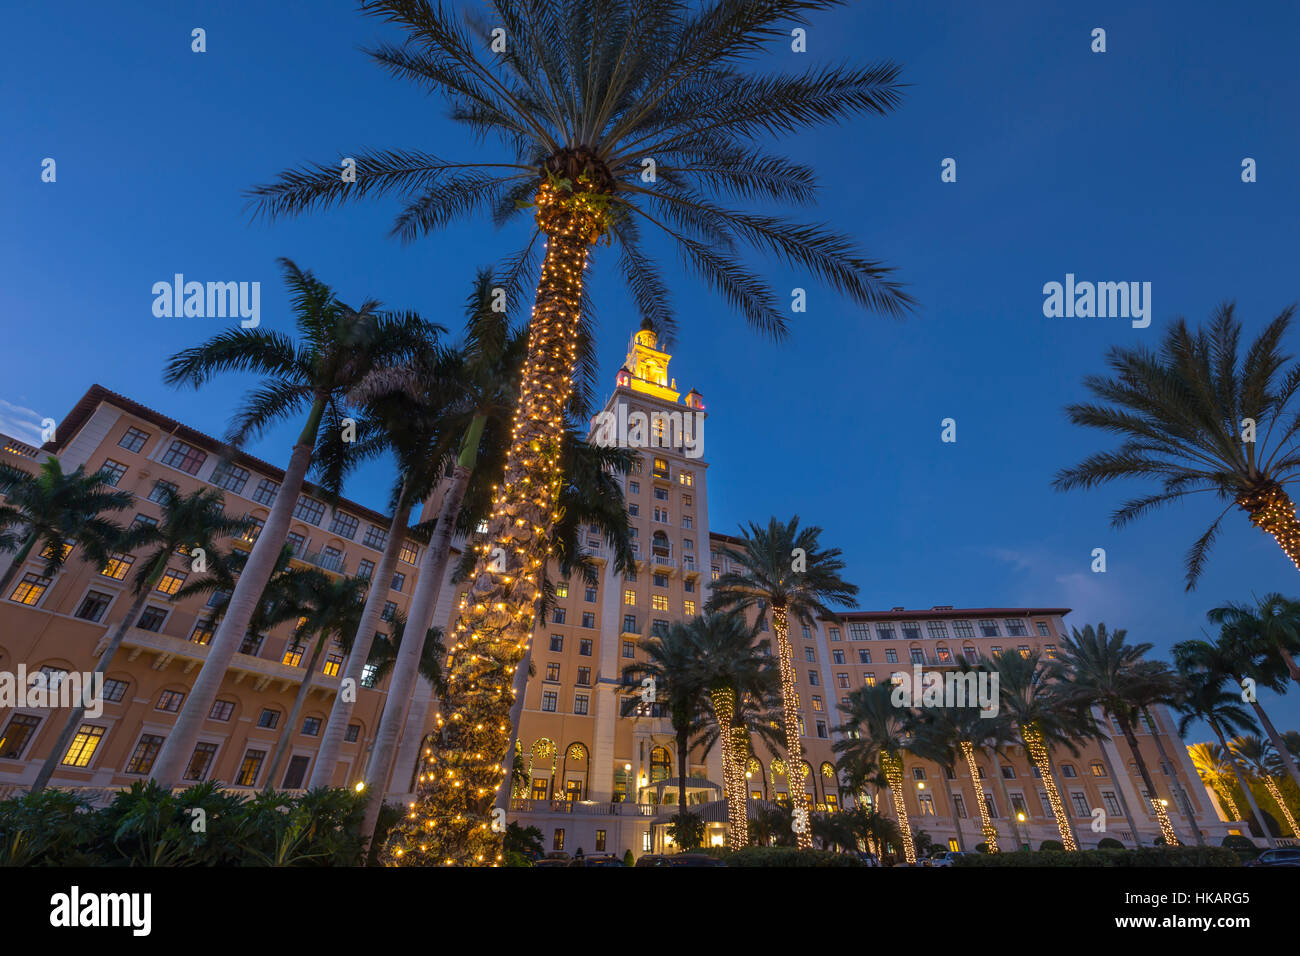 christmas decorations historic biltmore hotel shultze weaver 1926 coral gables miami florida - Florida Christmas Decorations